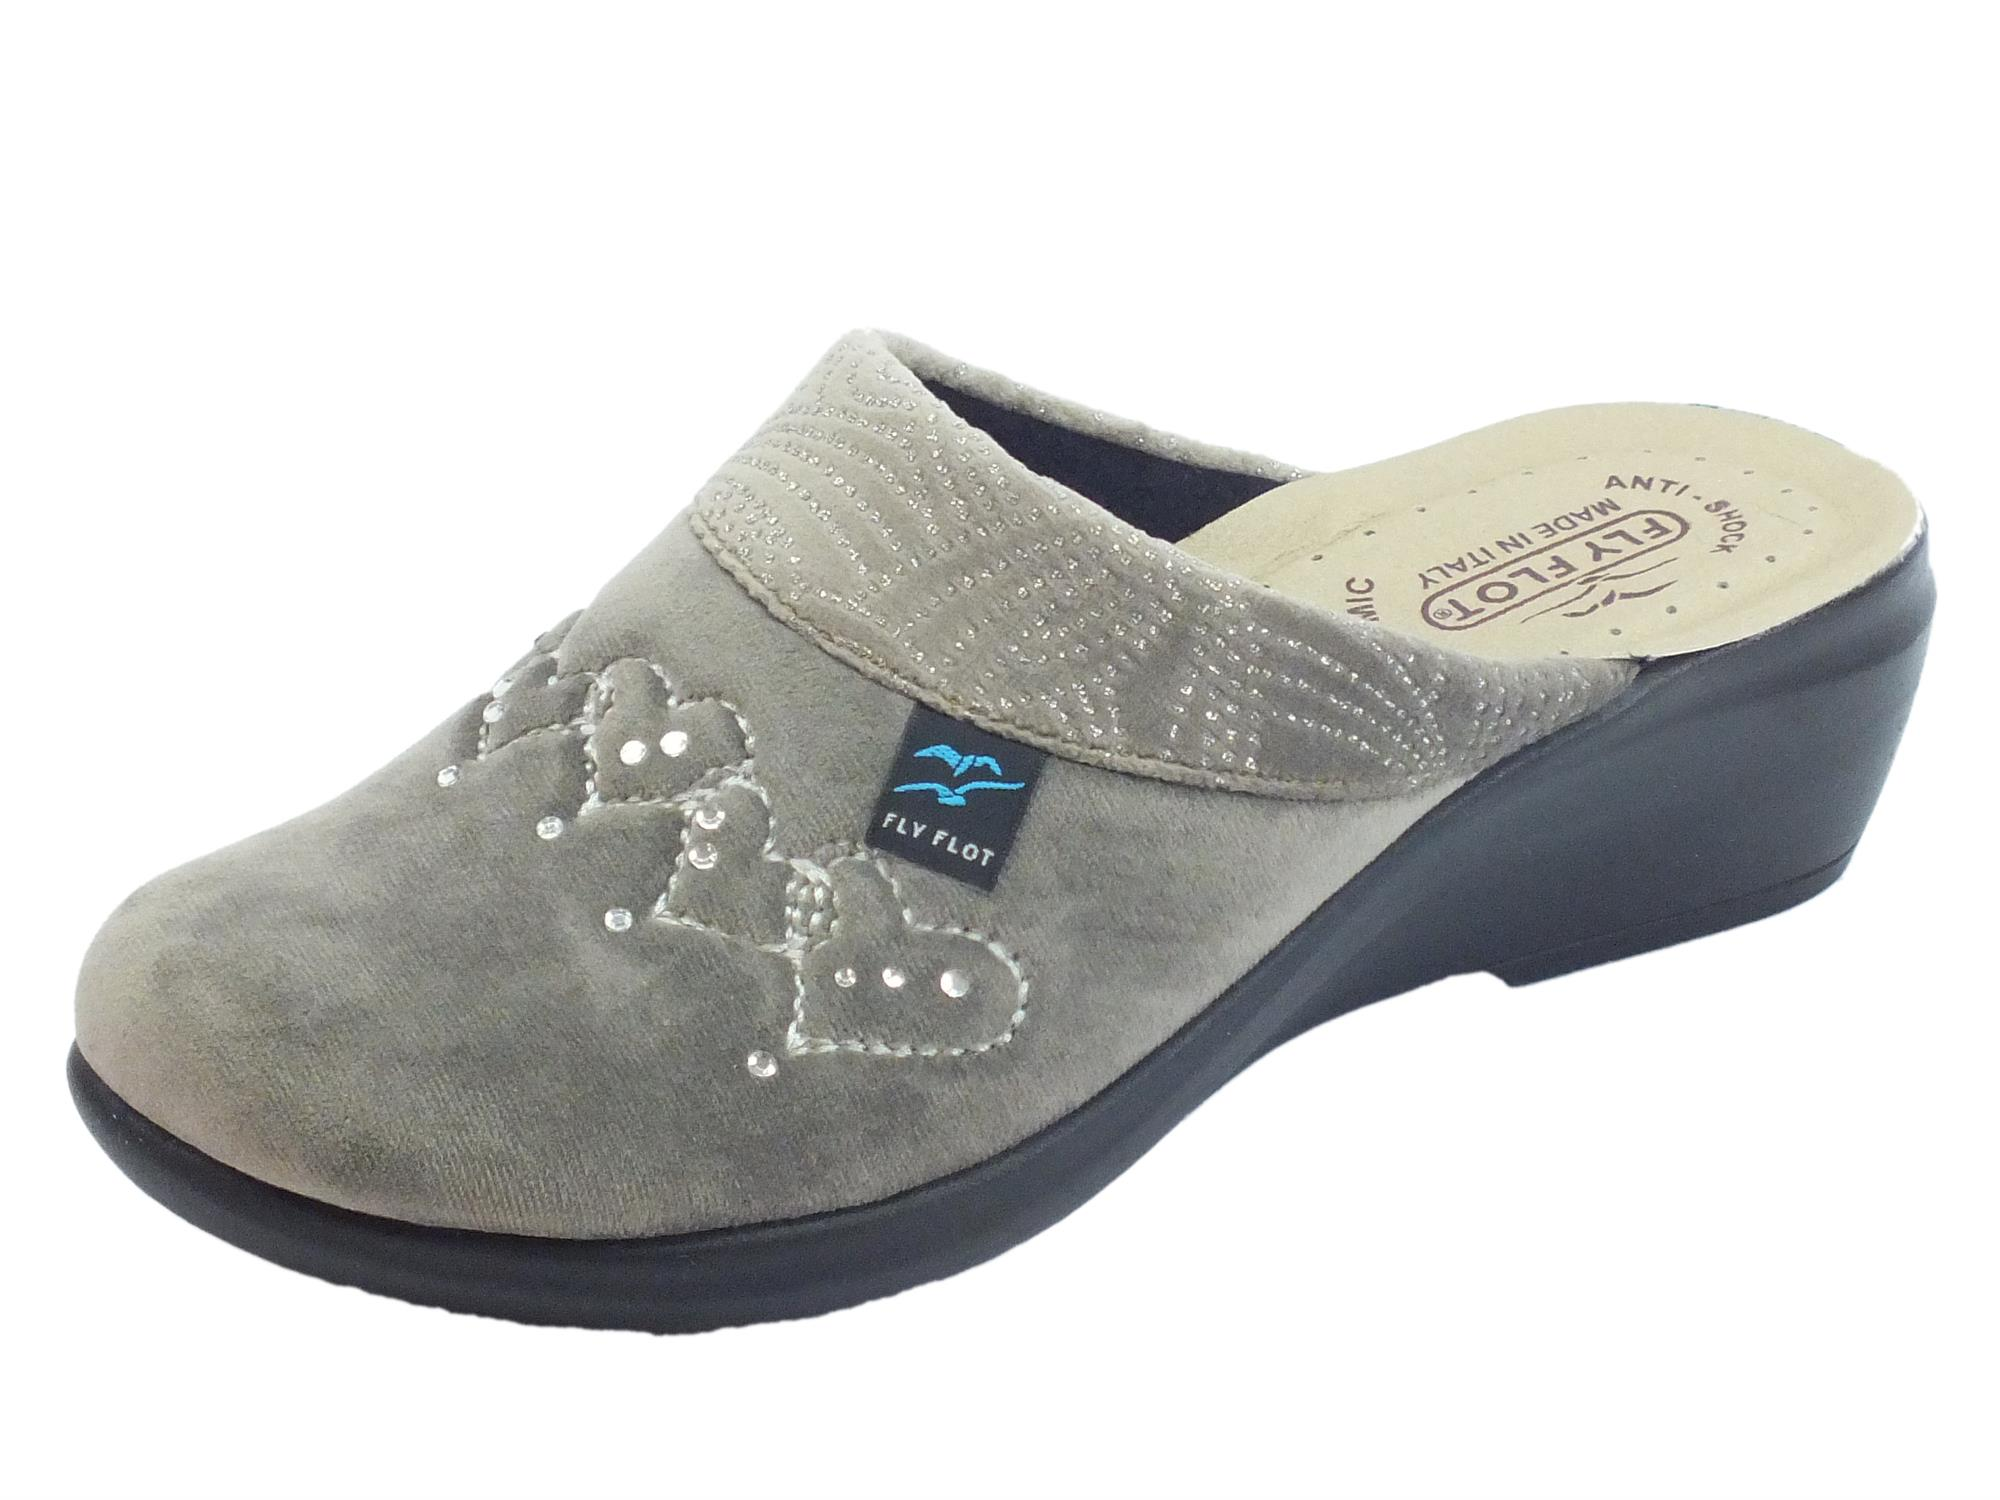 Pantofole FlyFlot per donna in tessuto pile rovere sottopiede anti-shock  zeppa alta c20bc34a301